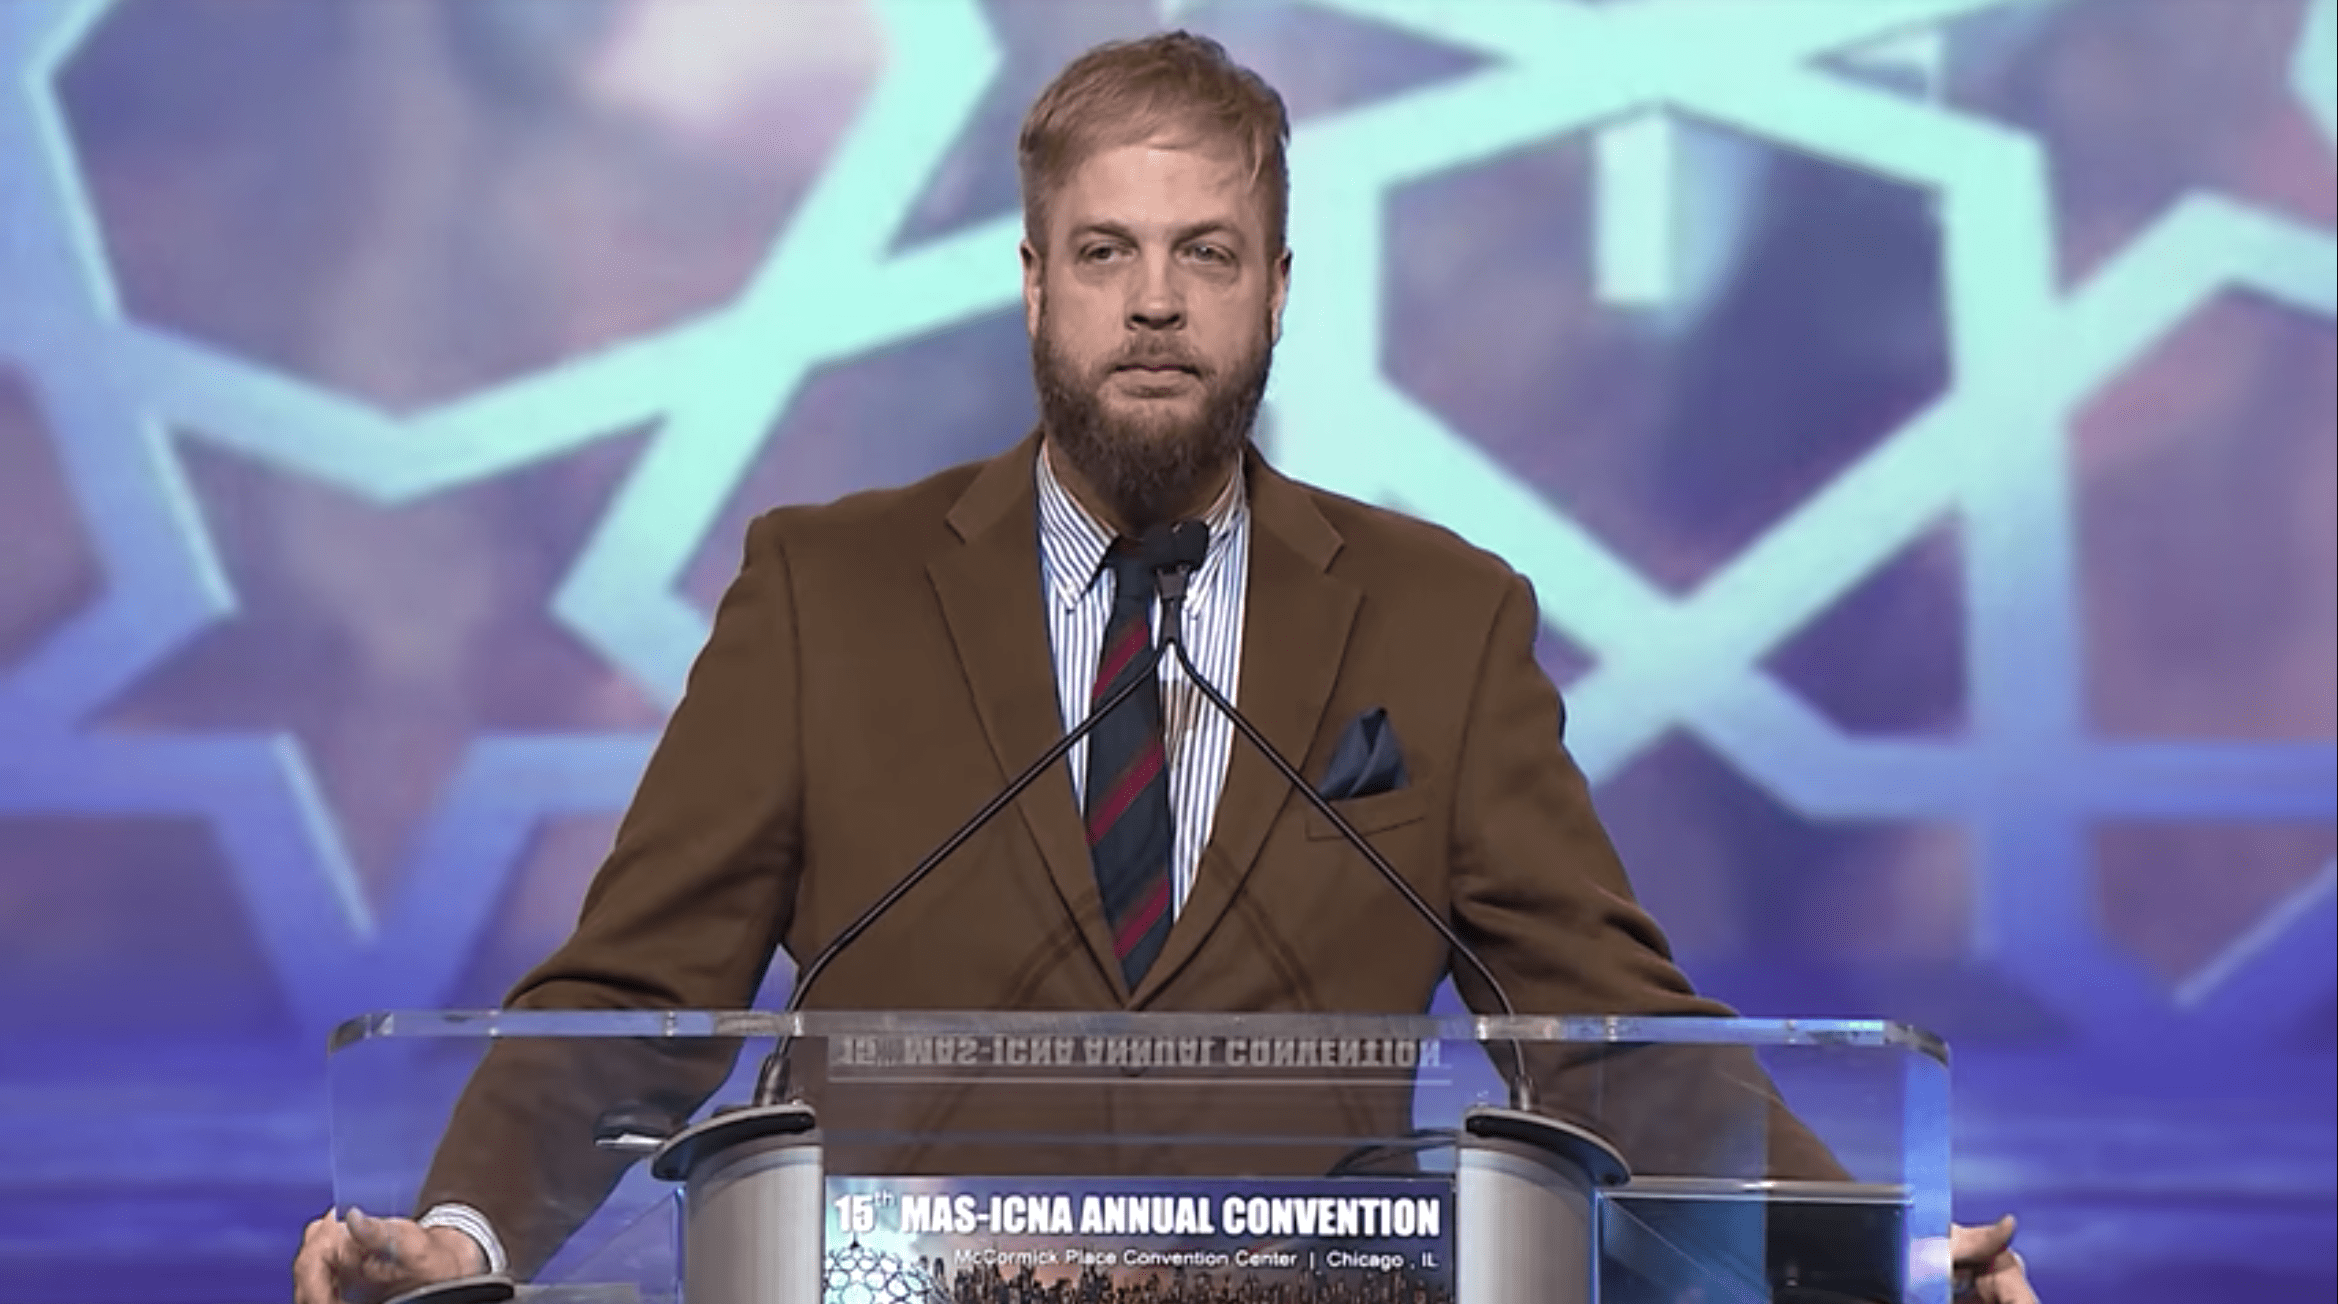 Suhaib Webb – A Shahada and Struggling Between Islamic Teaching & American Etiquette